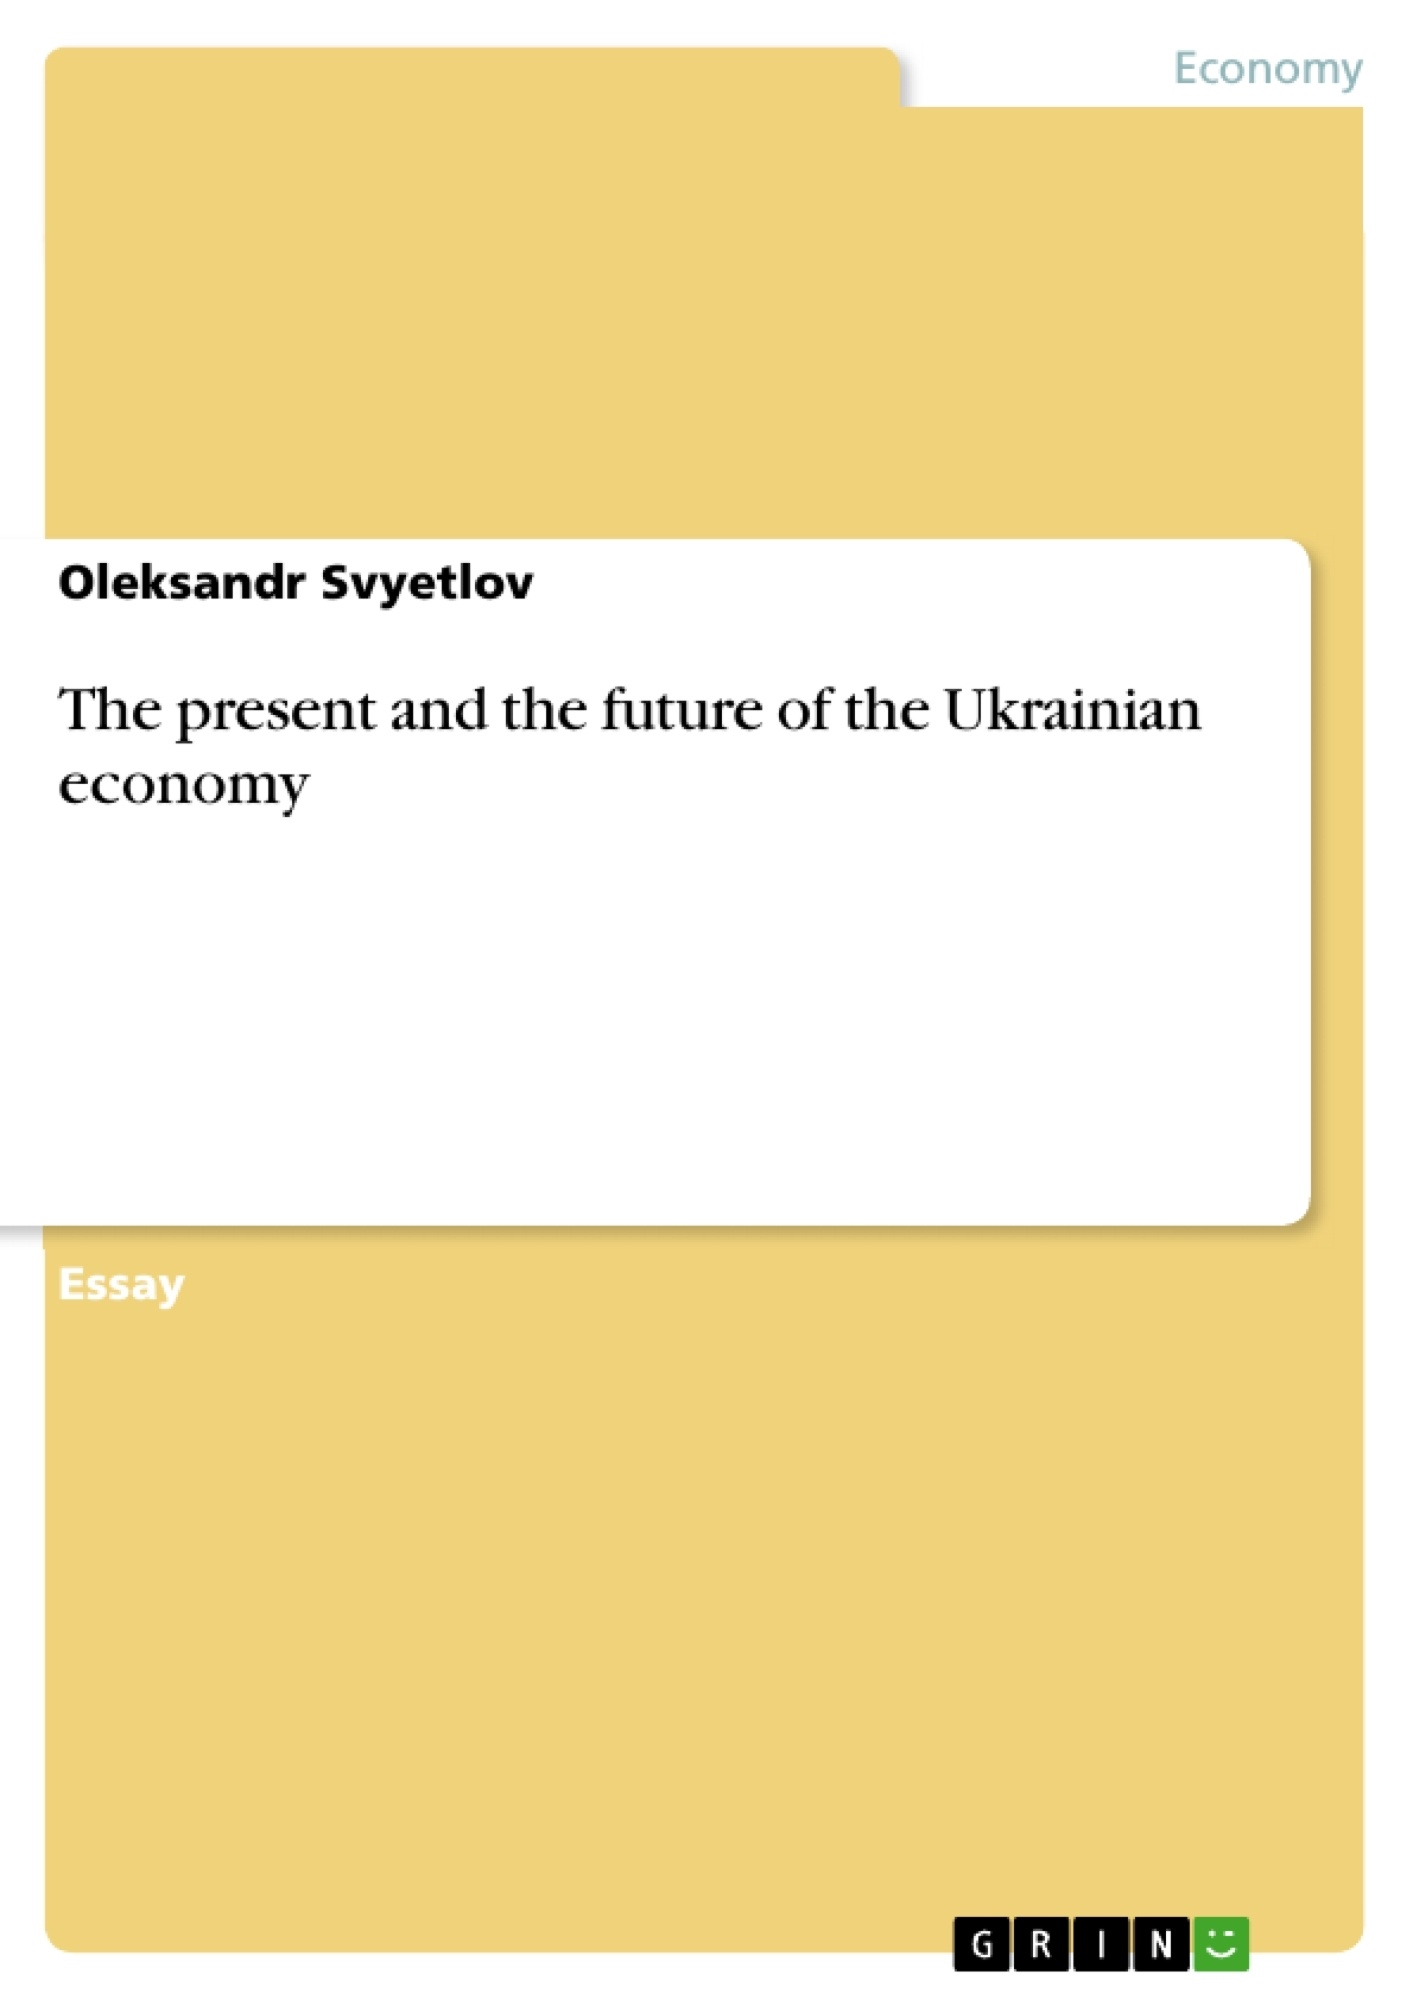 Title: The present and the future of the Ukrainian economy